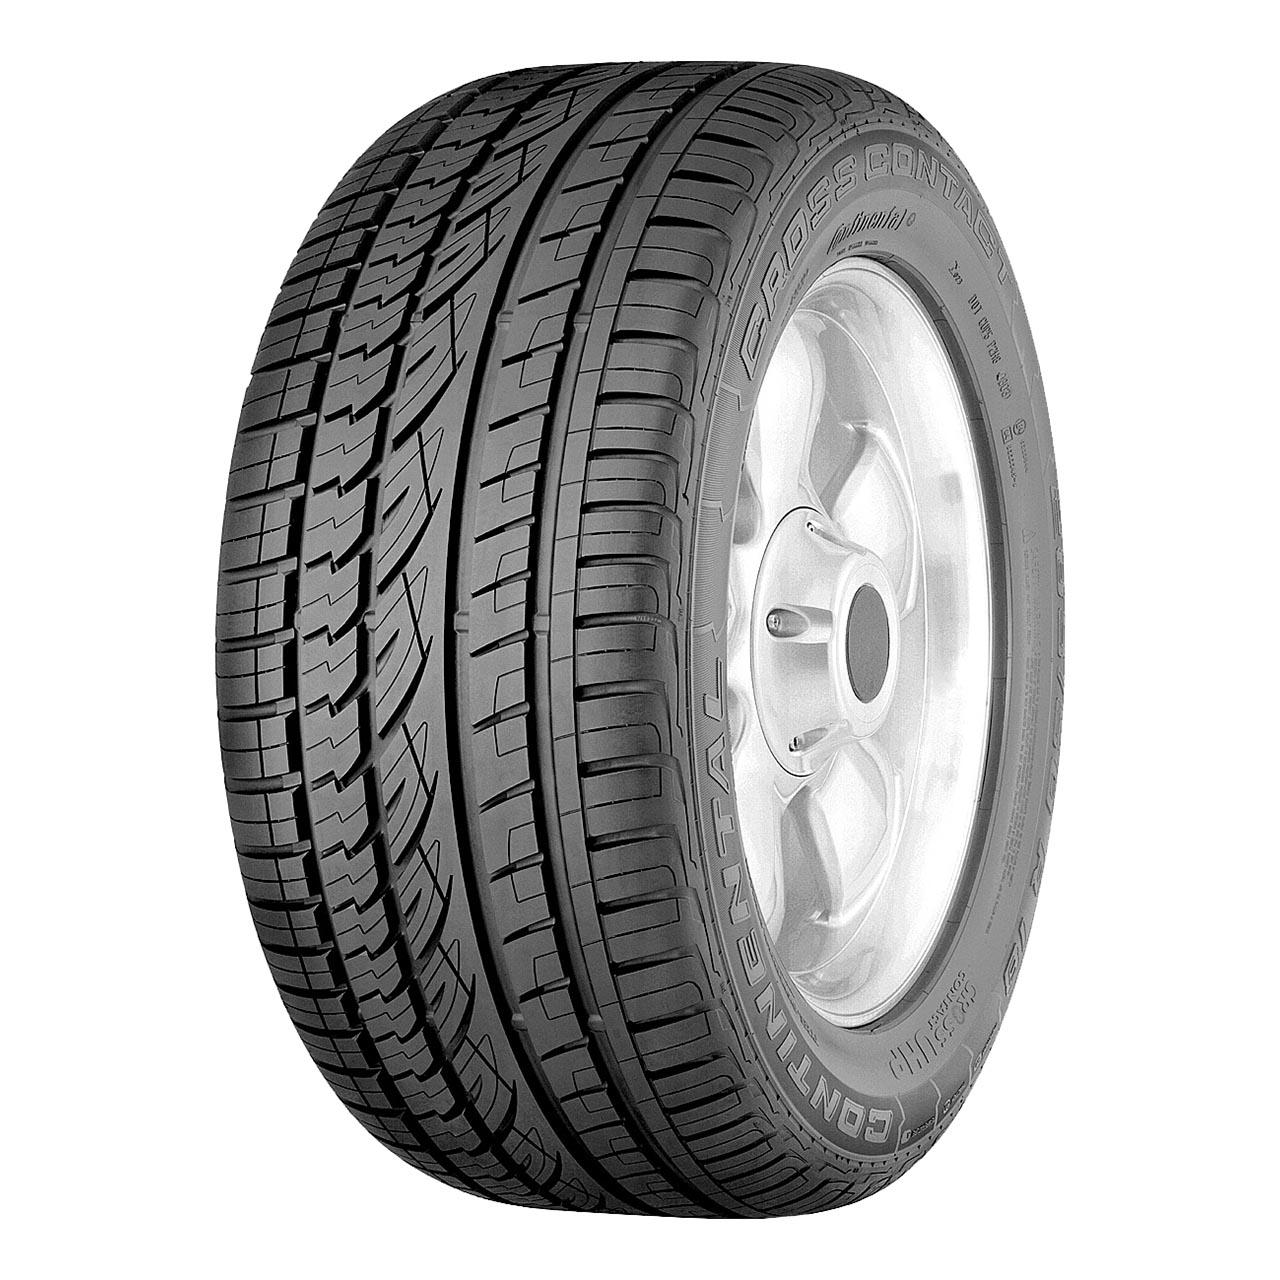 Continental CROSSCONTACT UHP 235/60R18 107W XL FR AO